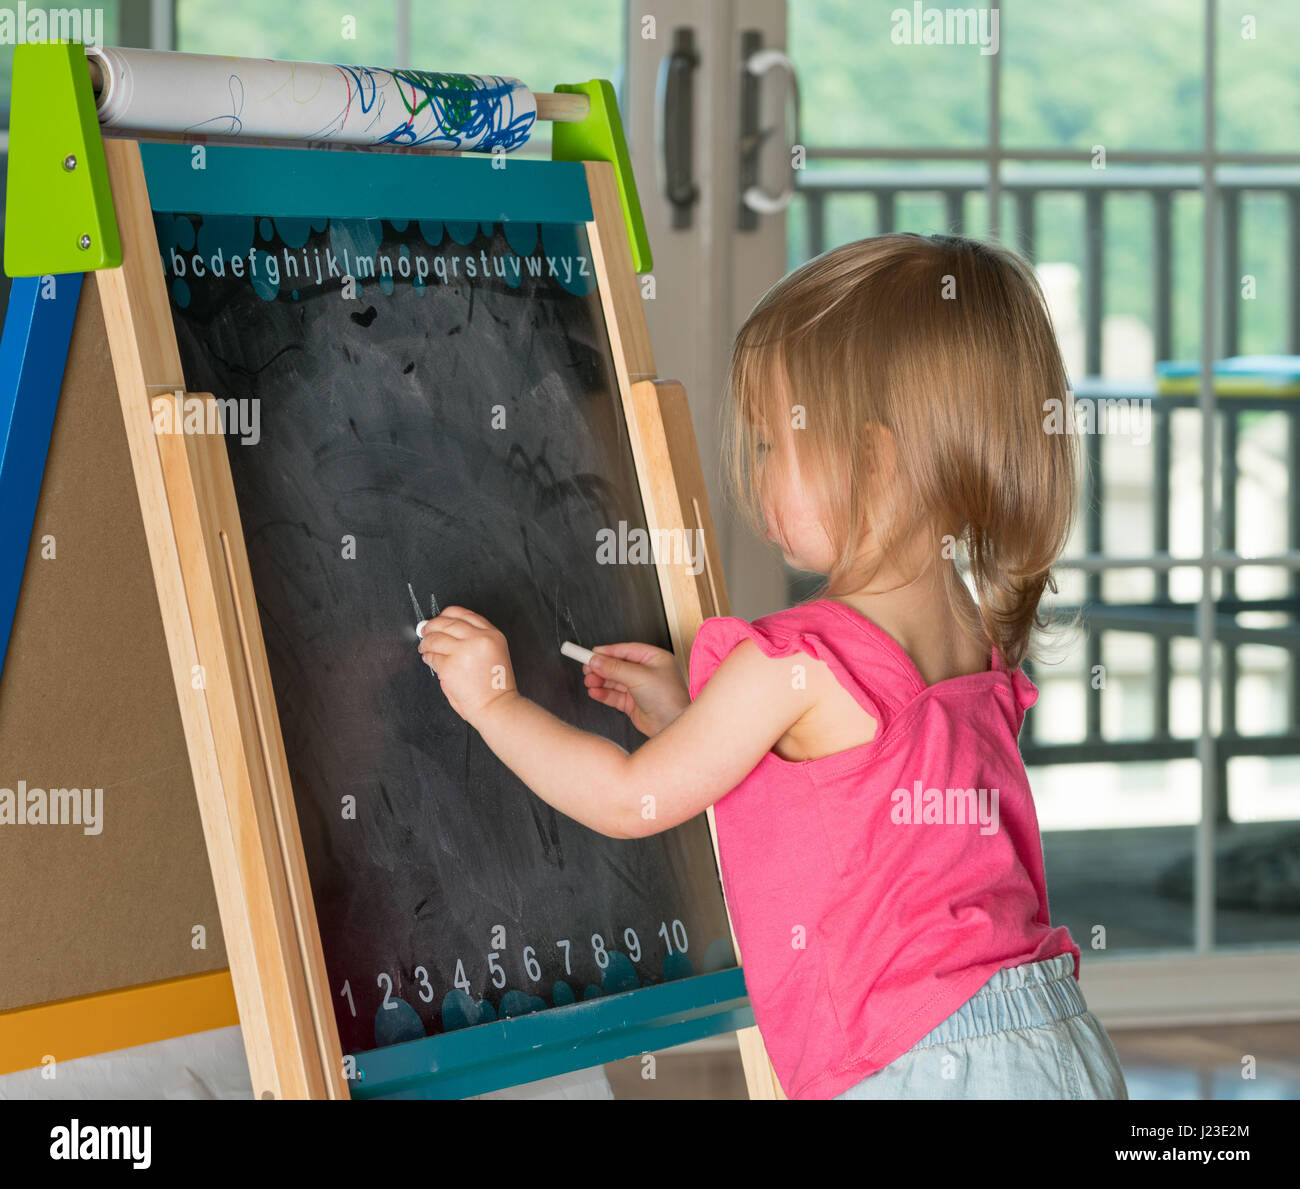 Young child learning to write and writing with chalk on a blackboard - Stock Image